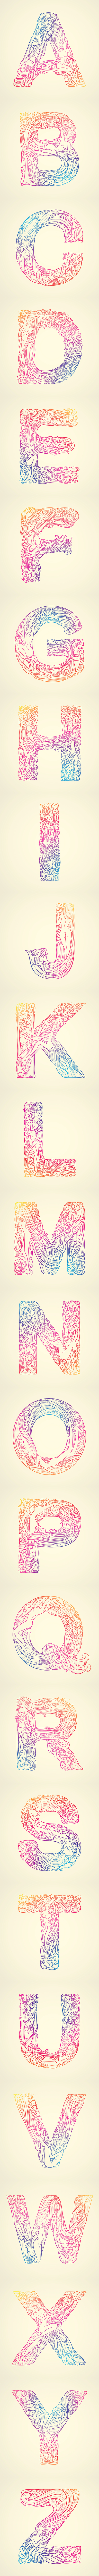 WHISPERED GARDEN - Typography Alphabets by Thuy Mat Tit